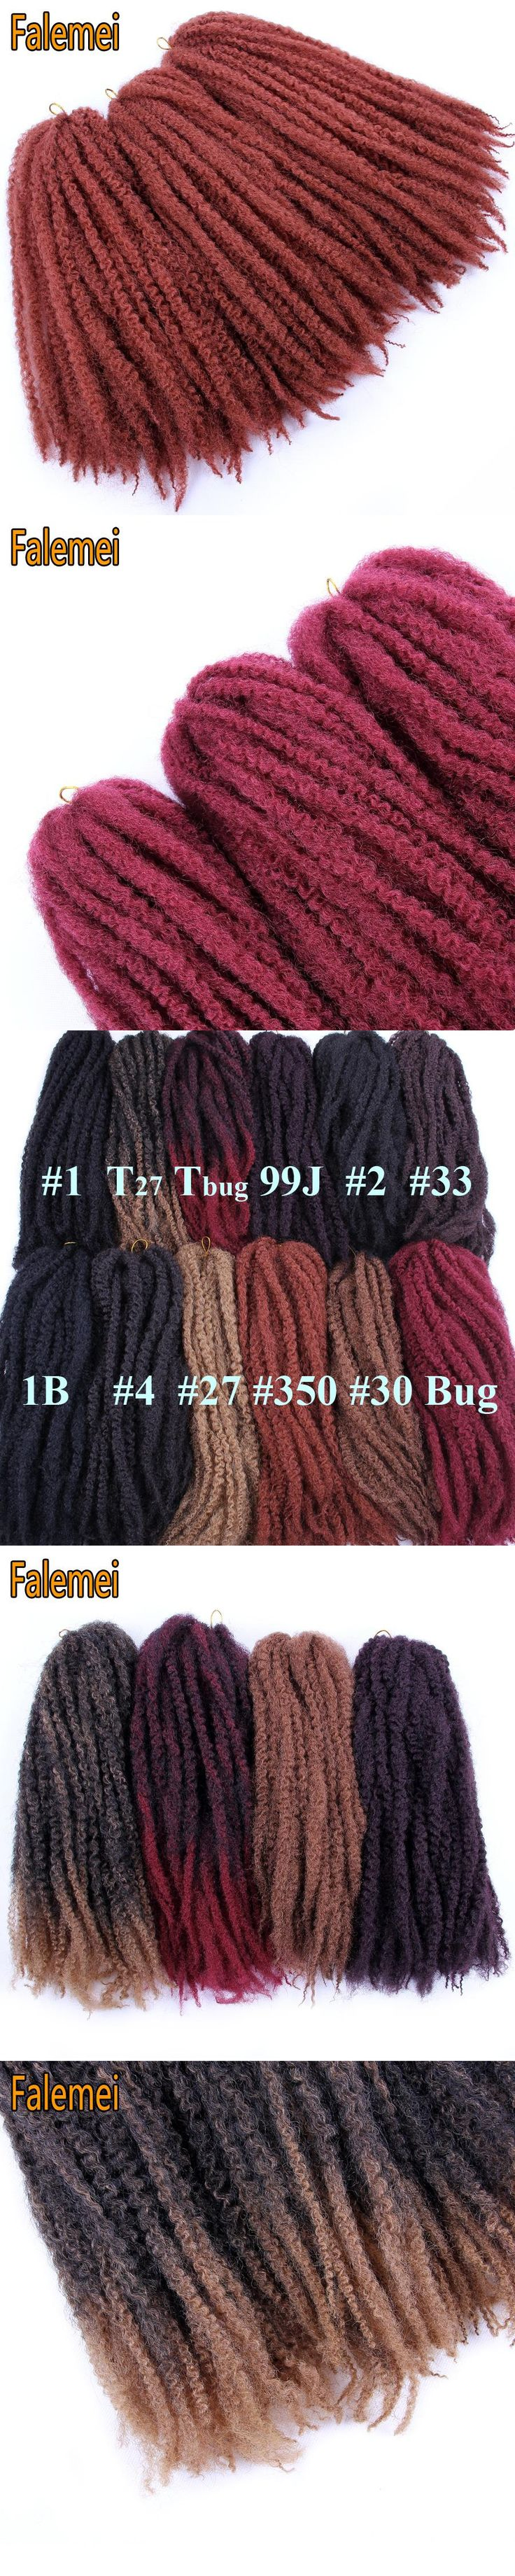 FALEMEI 18inch 100gpack Synthetic Afro Kinky Marley Crochet Braids Hair Extensions Low Temperature Fiber synthetic crochet hair